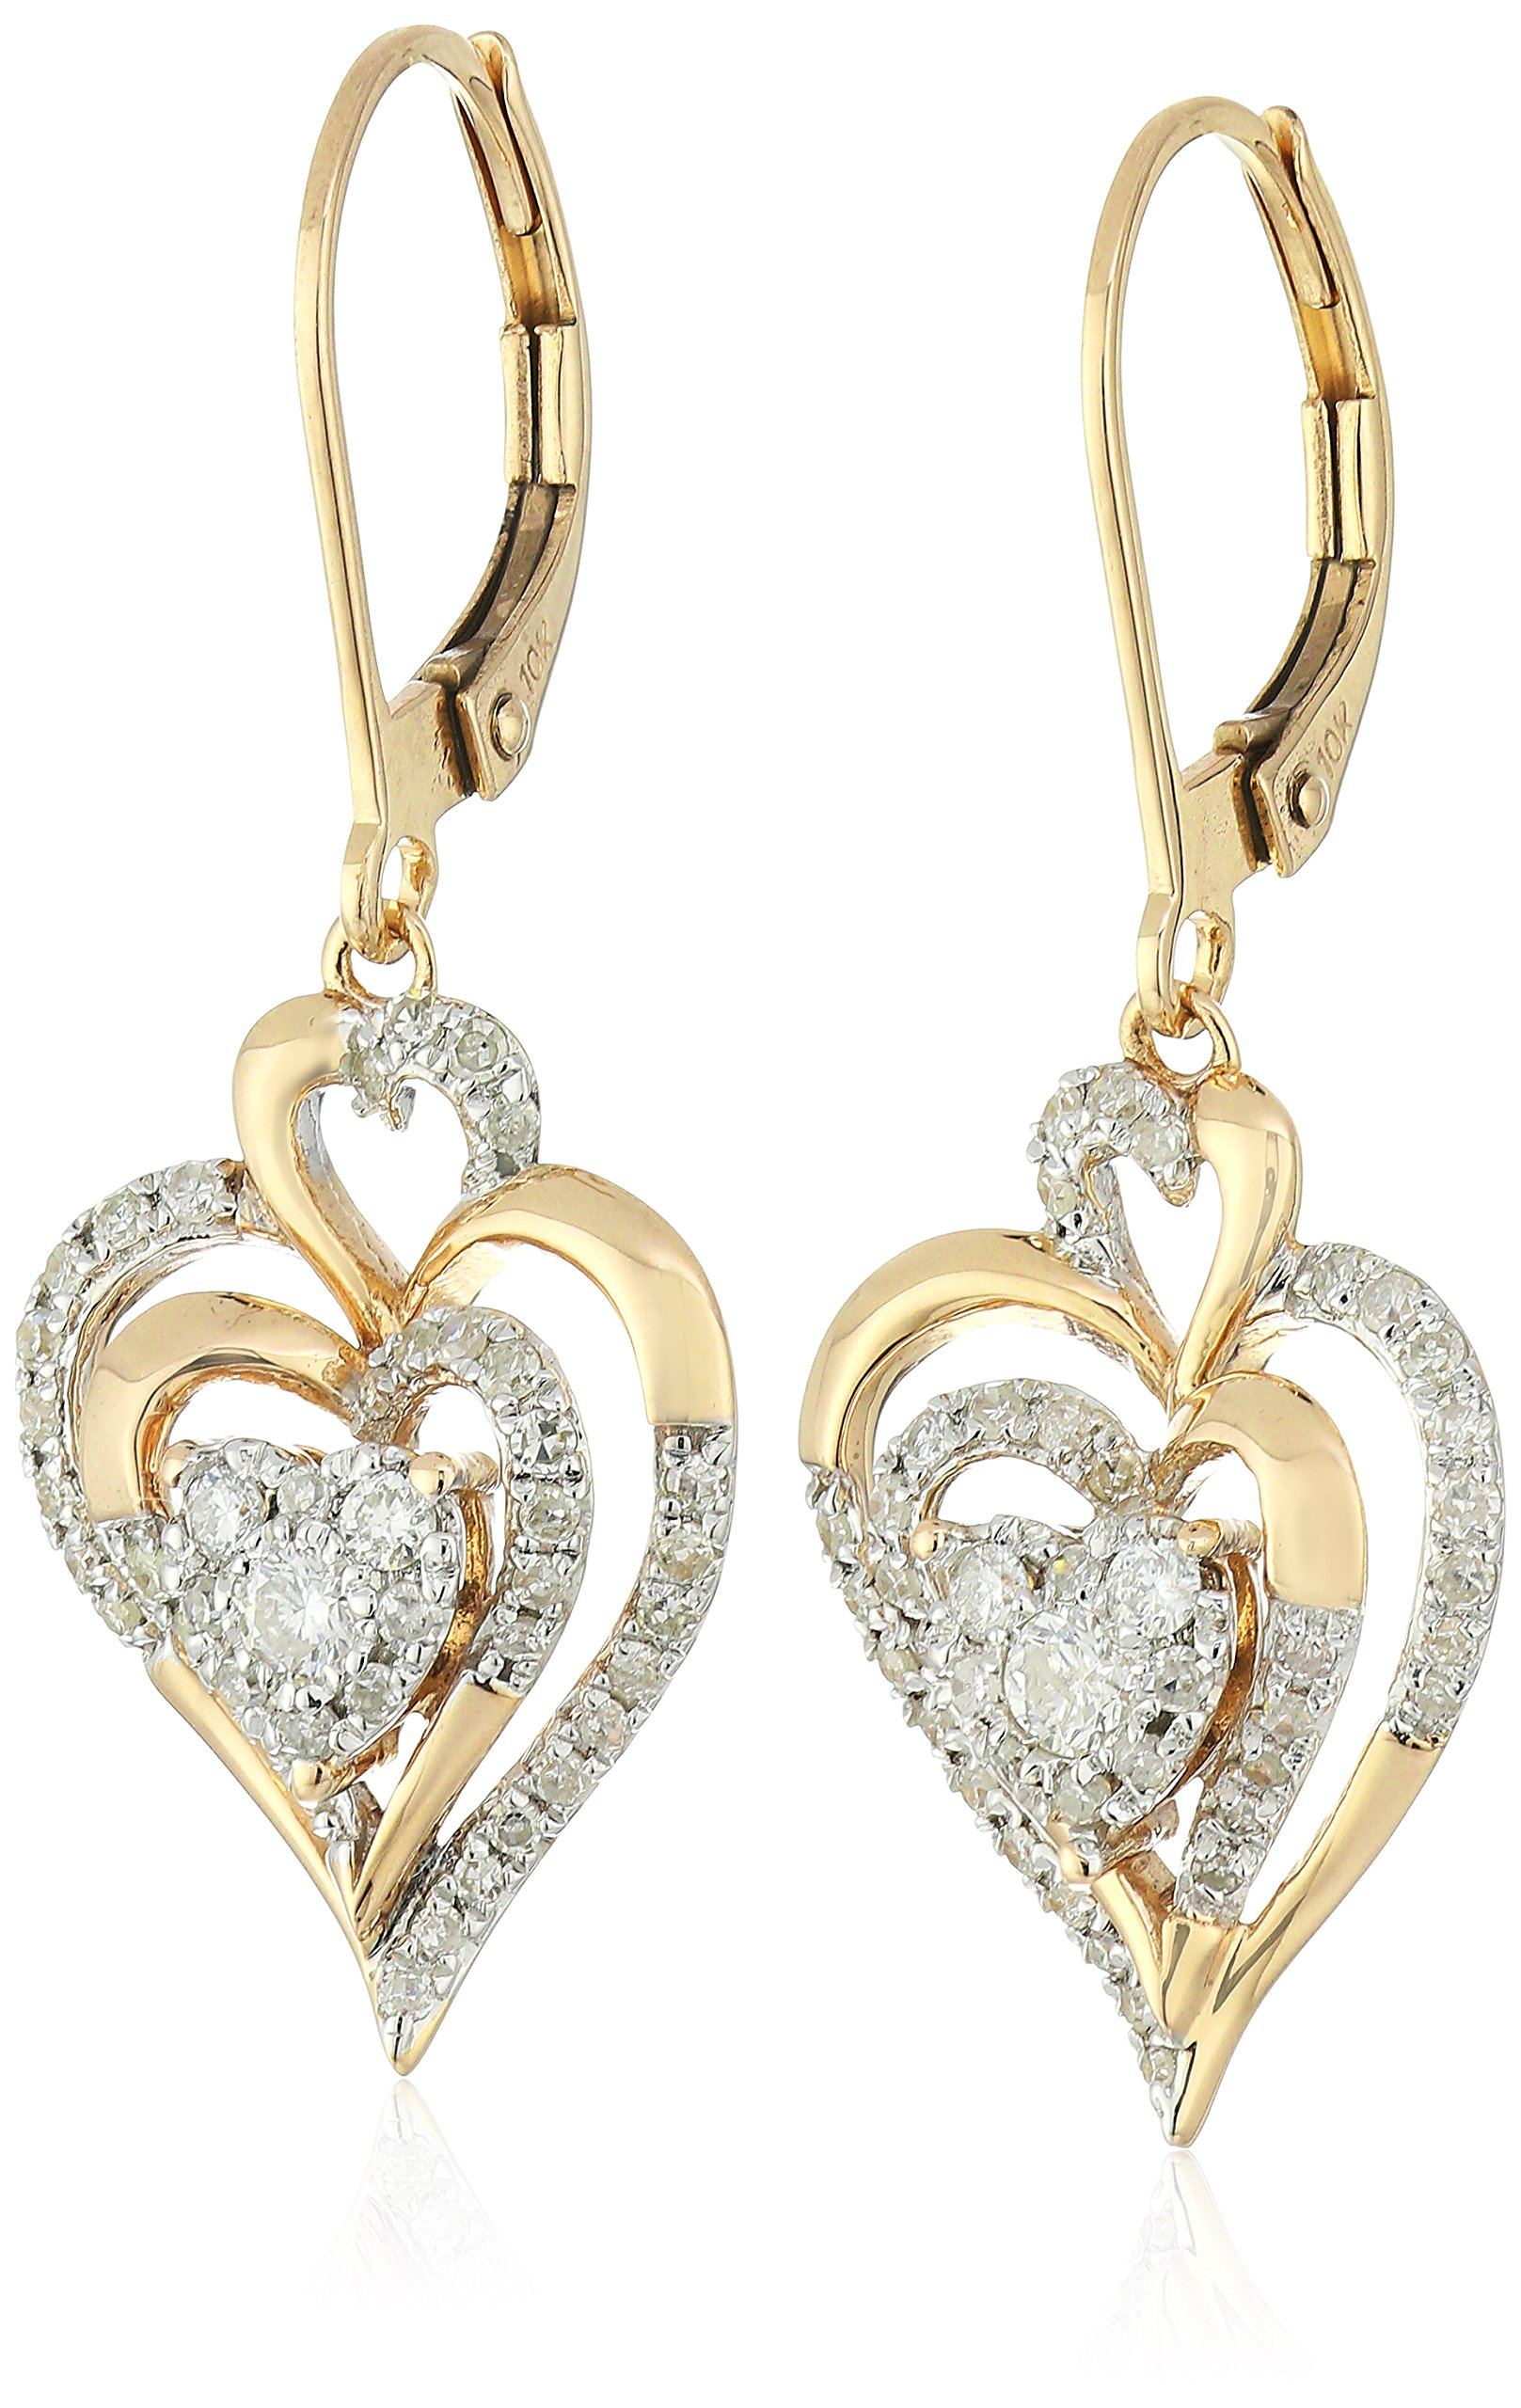 10K Yellow Gold Cluster Heart Diamond Drop Earrings (1/2 cttw, I-JColor, I2-I3 Clarity)